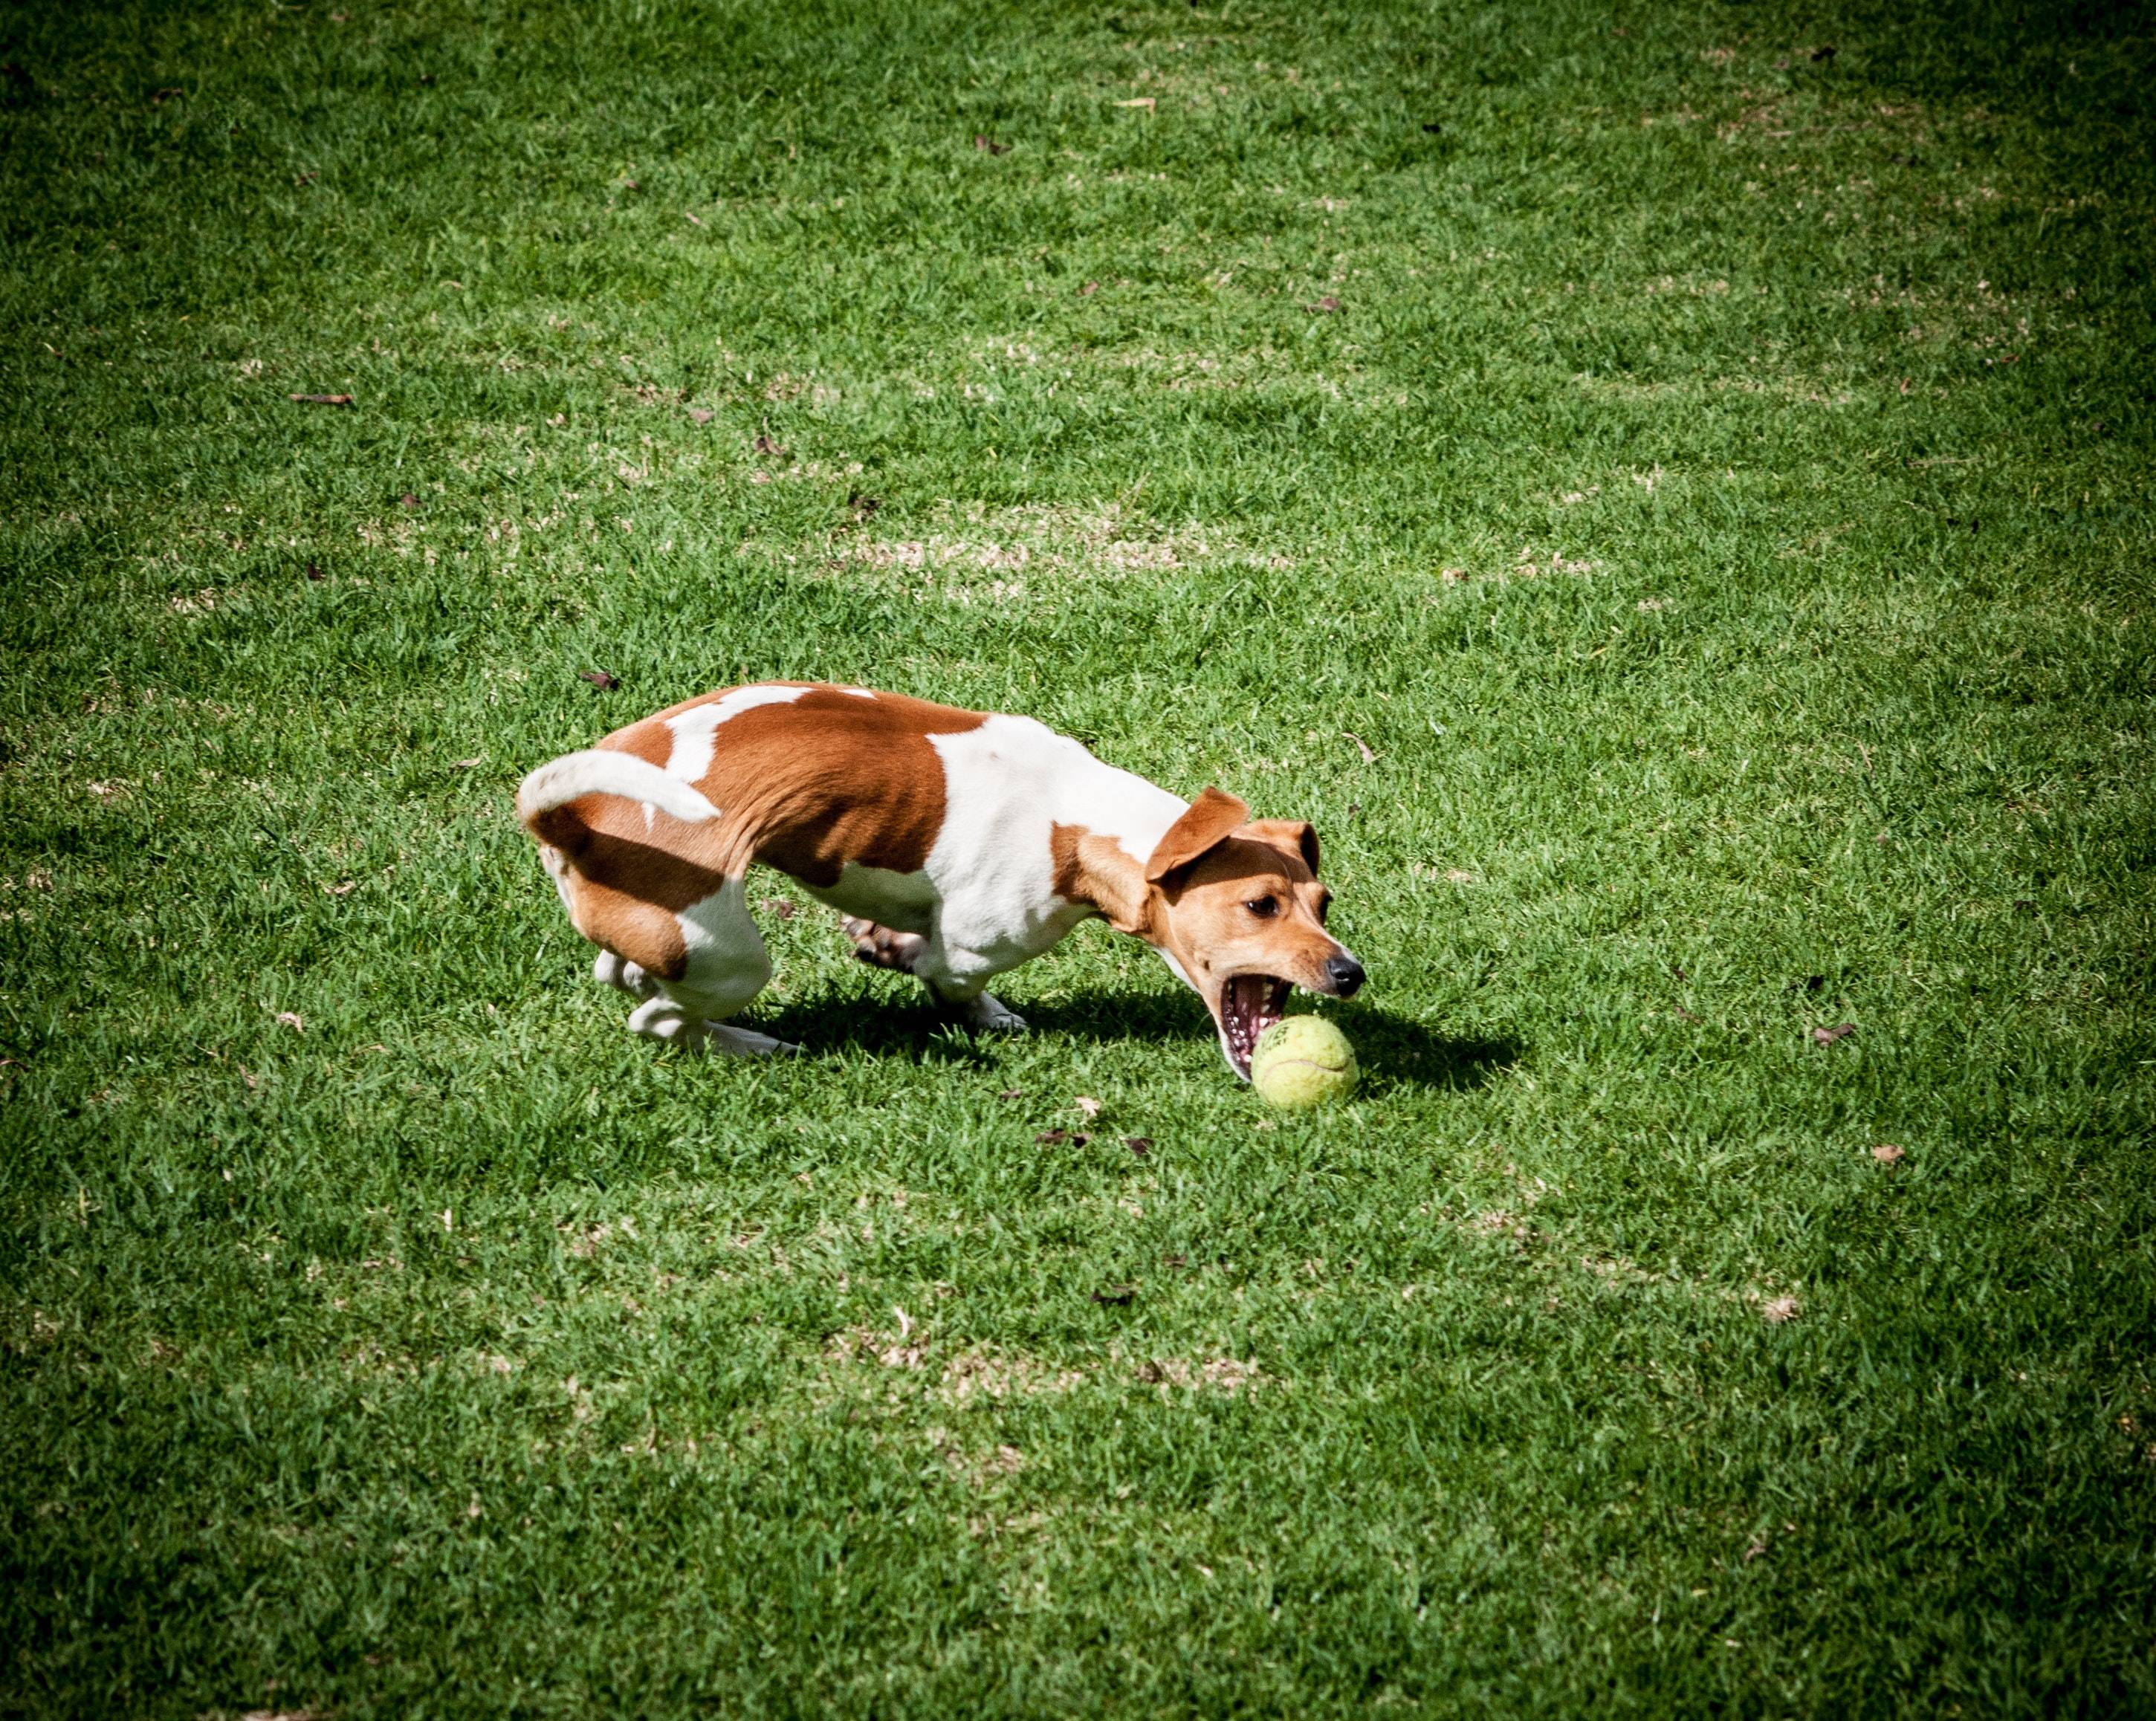 5 Dog Park Tips To Avoid Issues With Other Dogs And Their Owners - Team K9